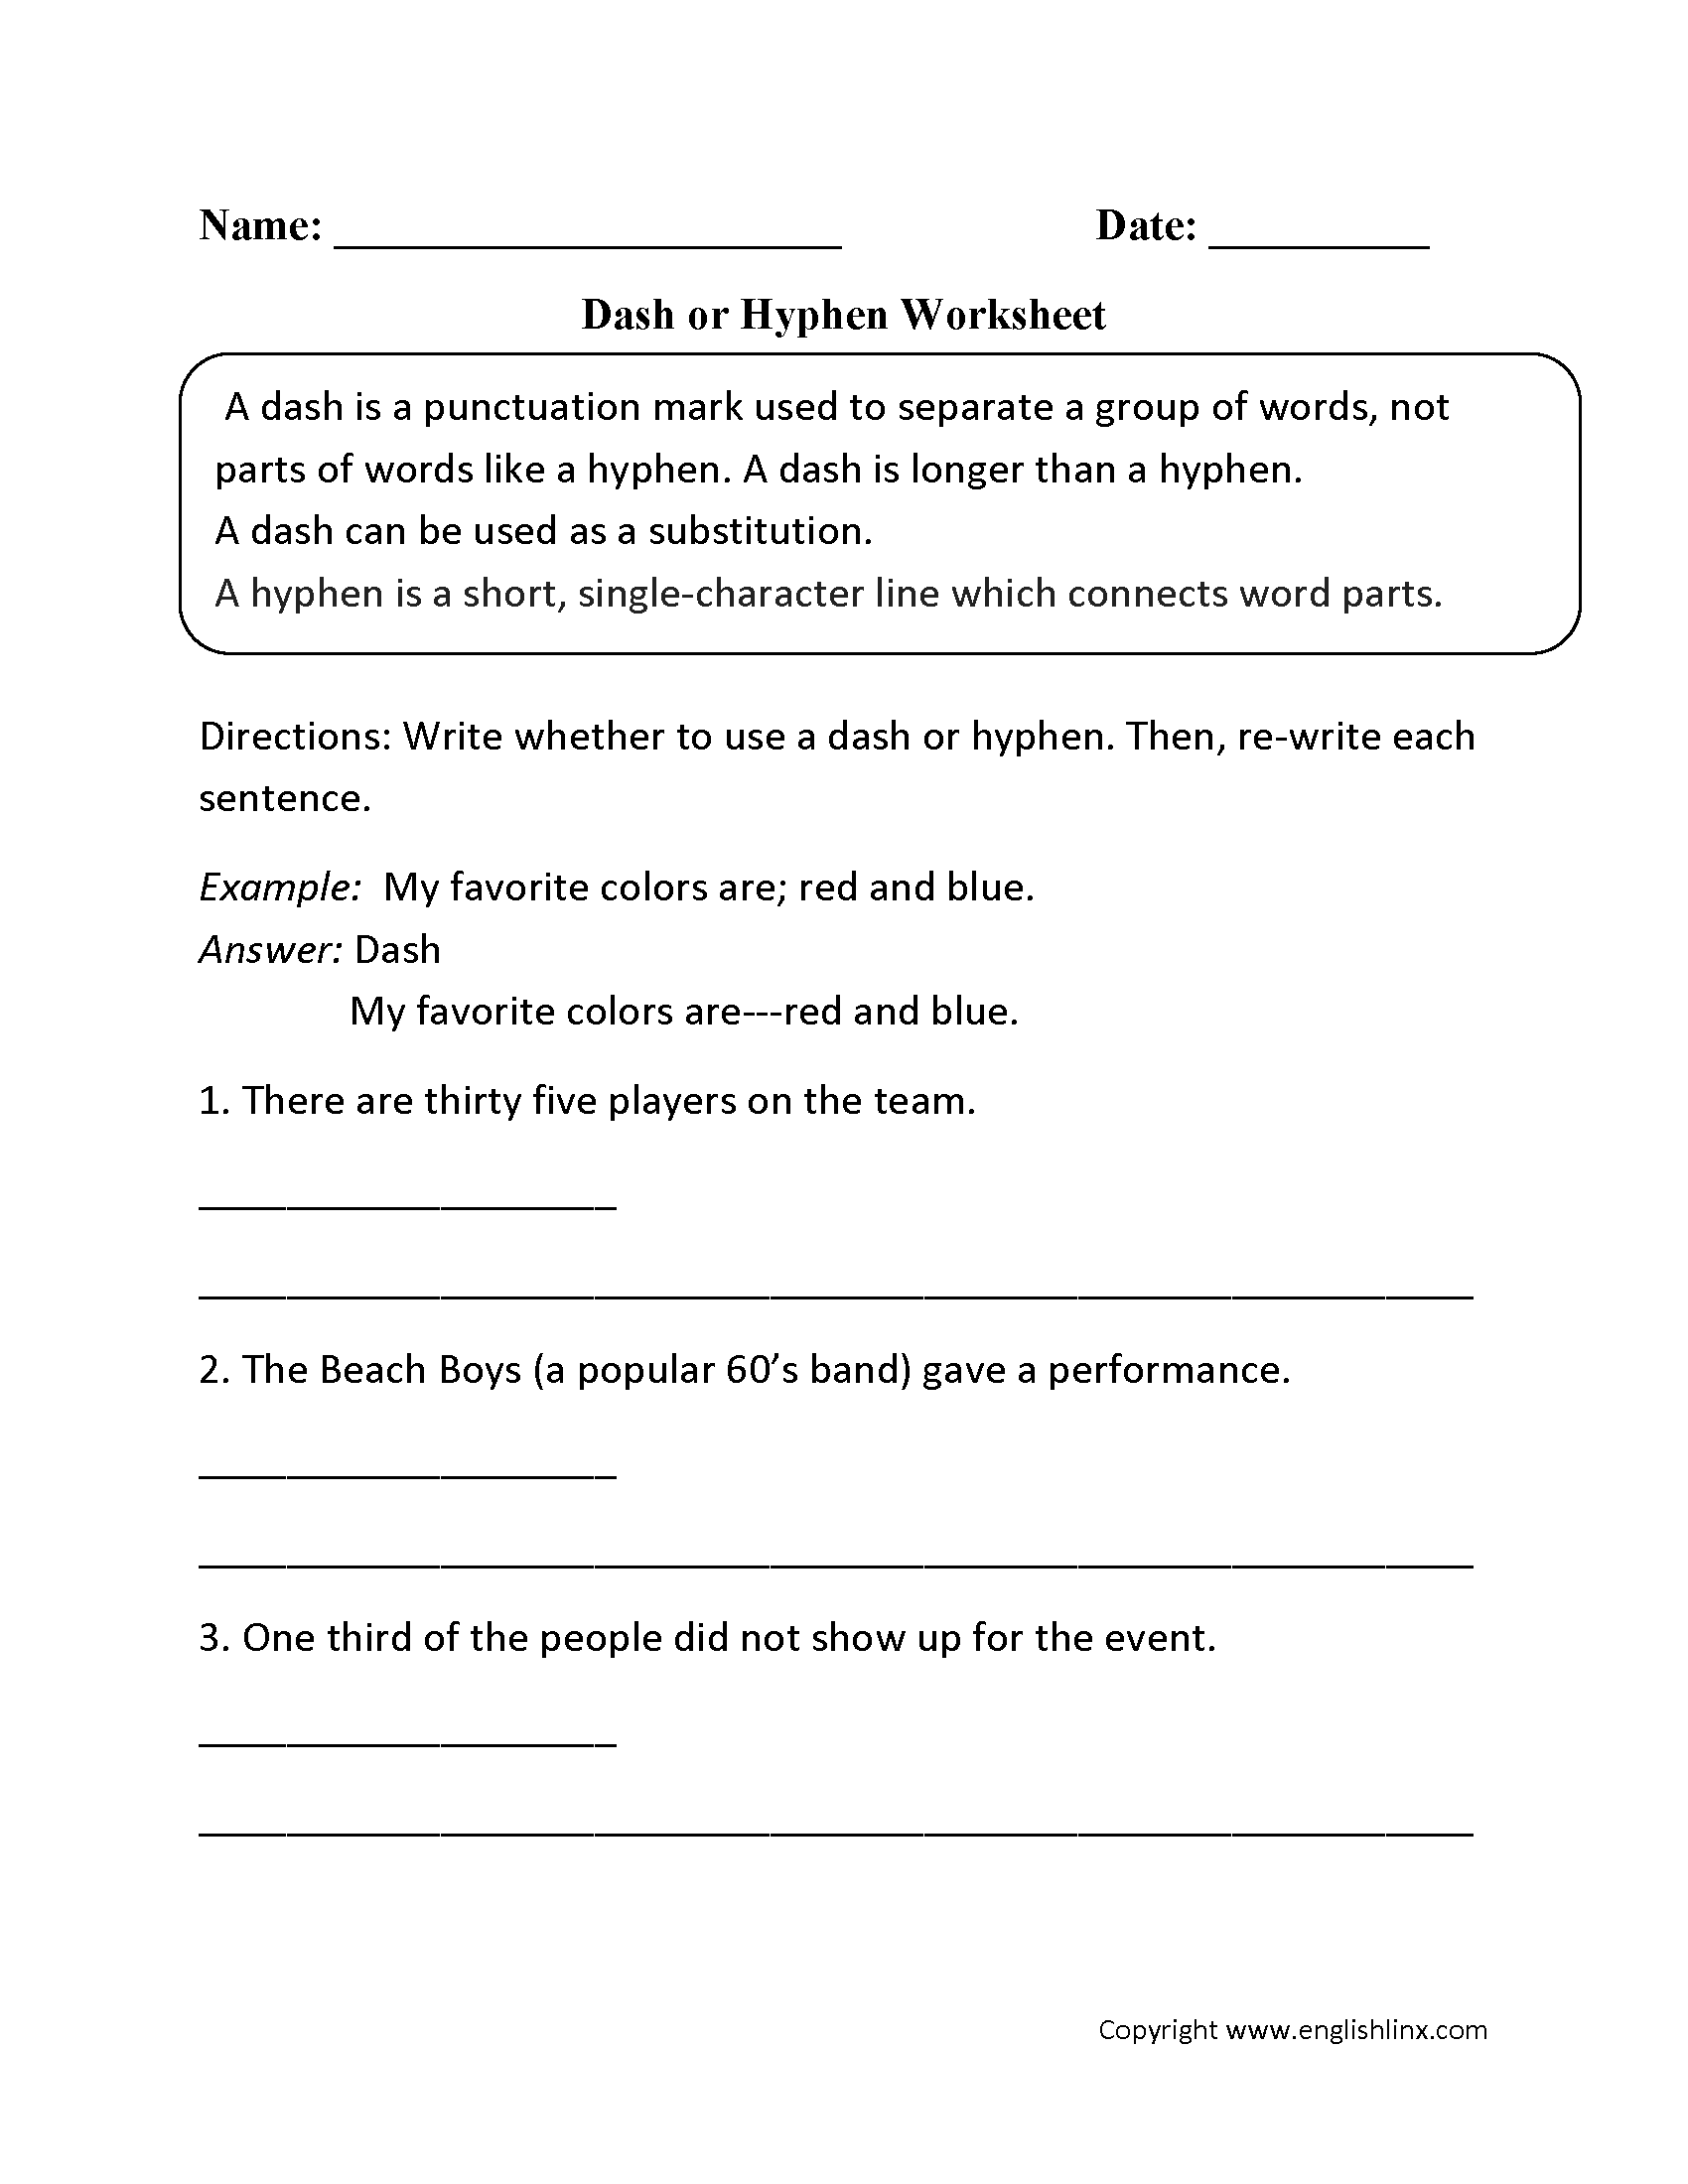 Hyphen Worksheet Year 6